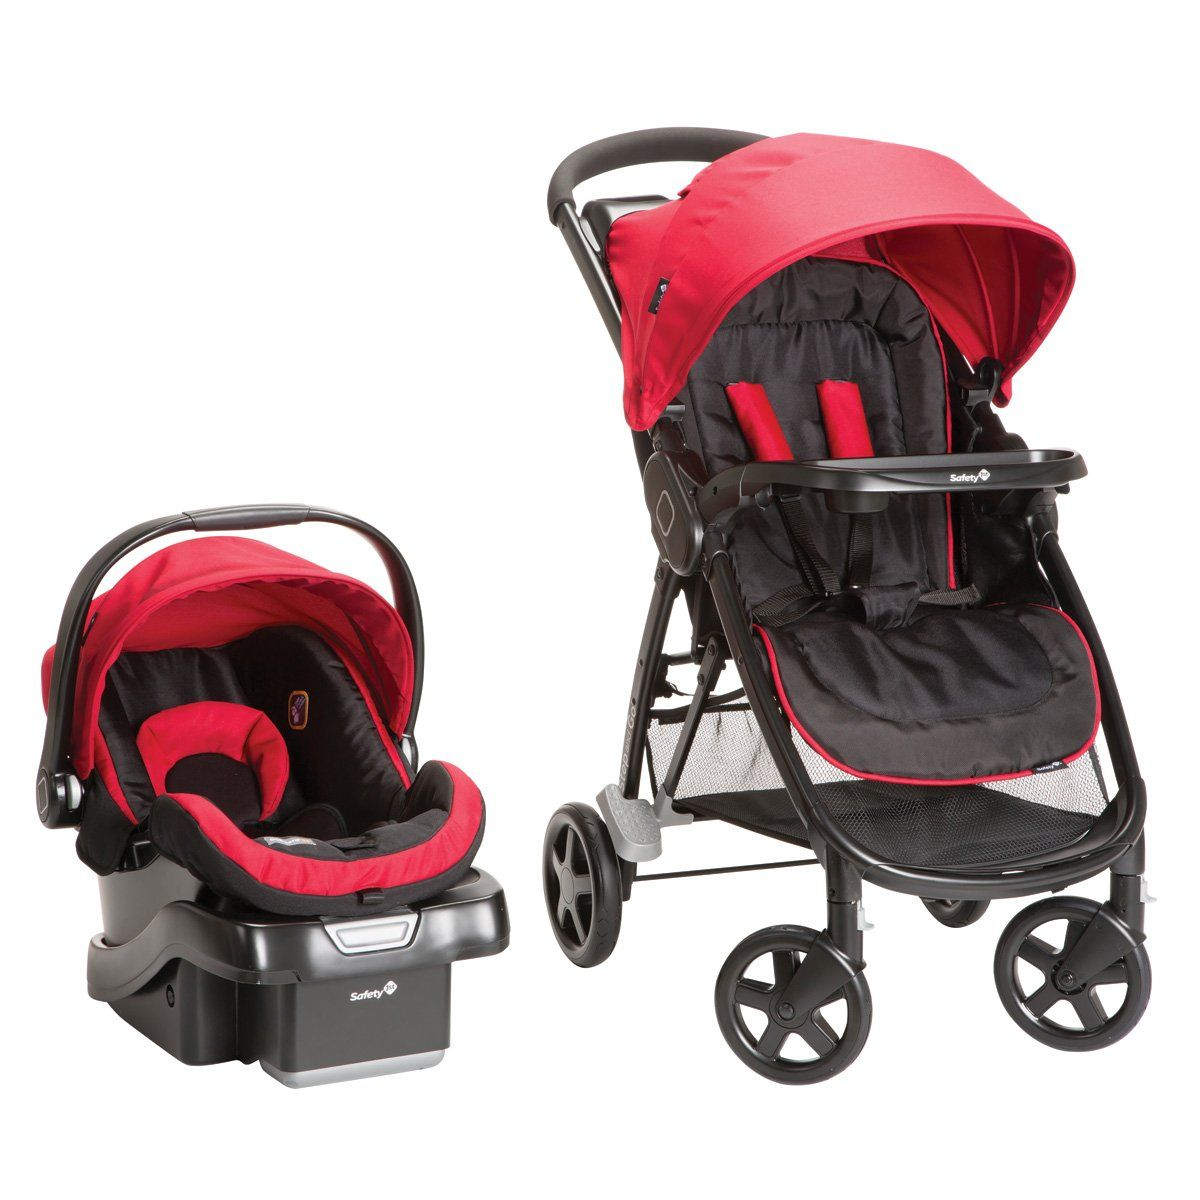 Nuna Stroller Recall Safety 1st Step And Go 2 Travel System Scarlet Red